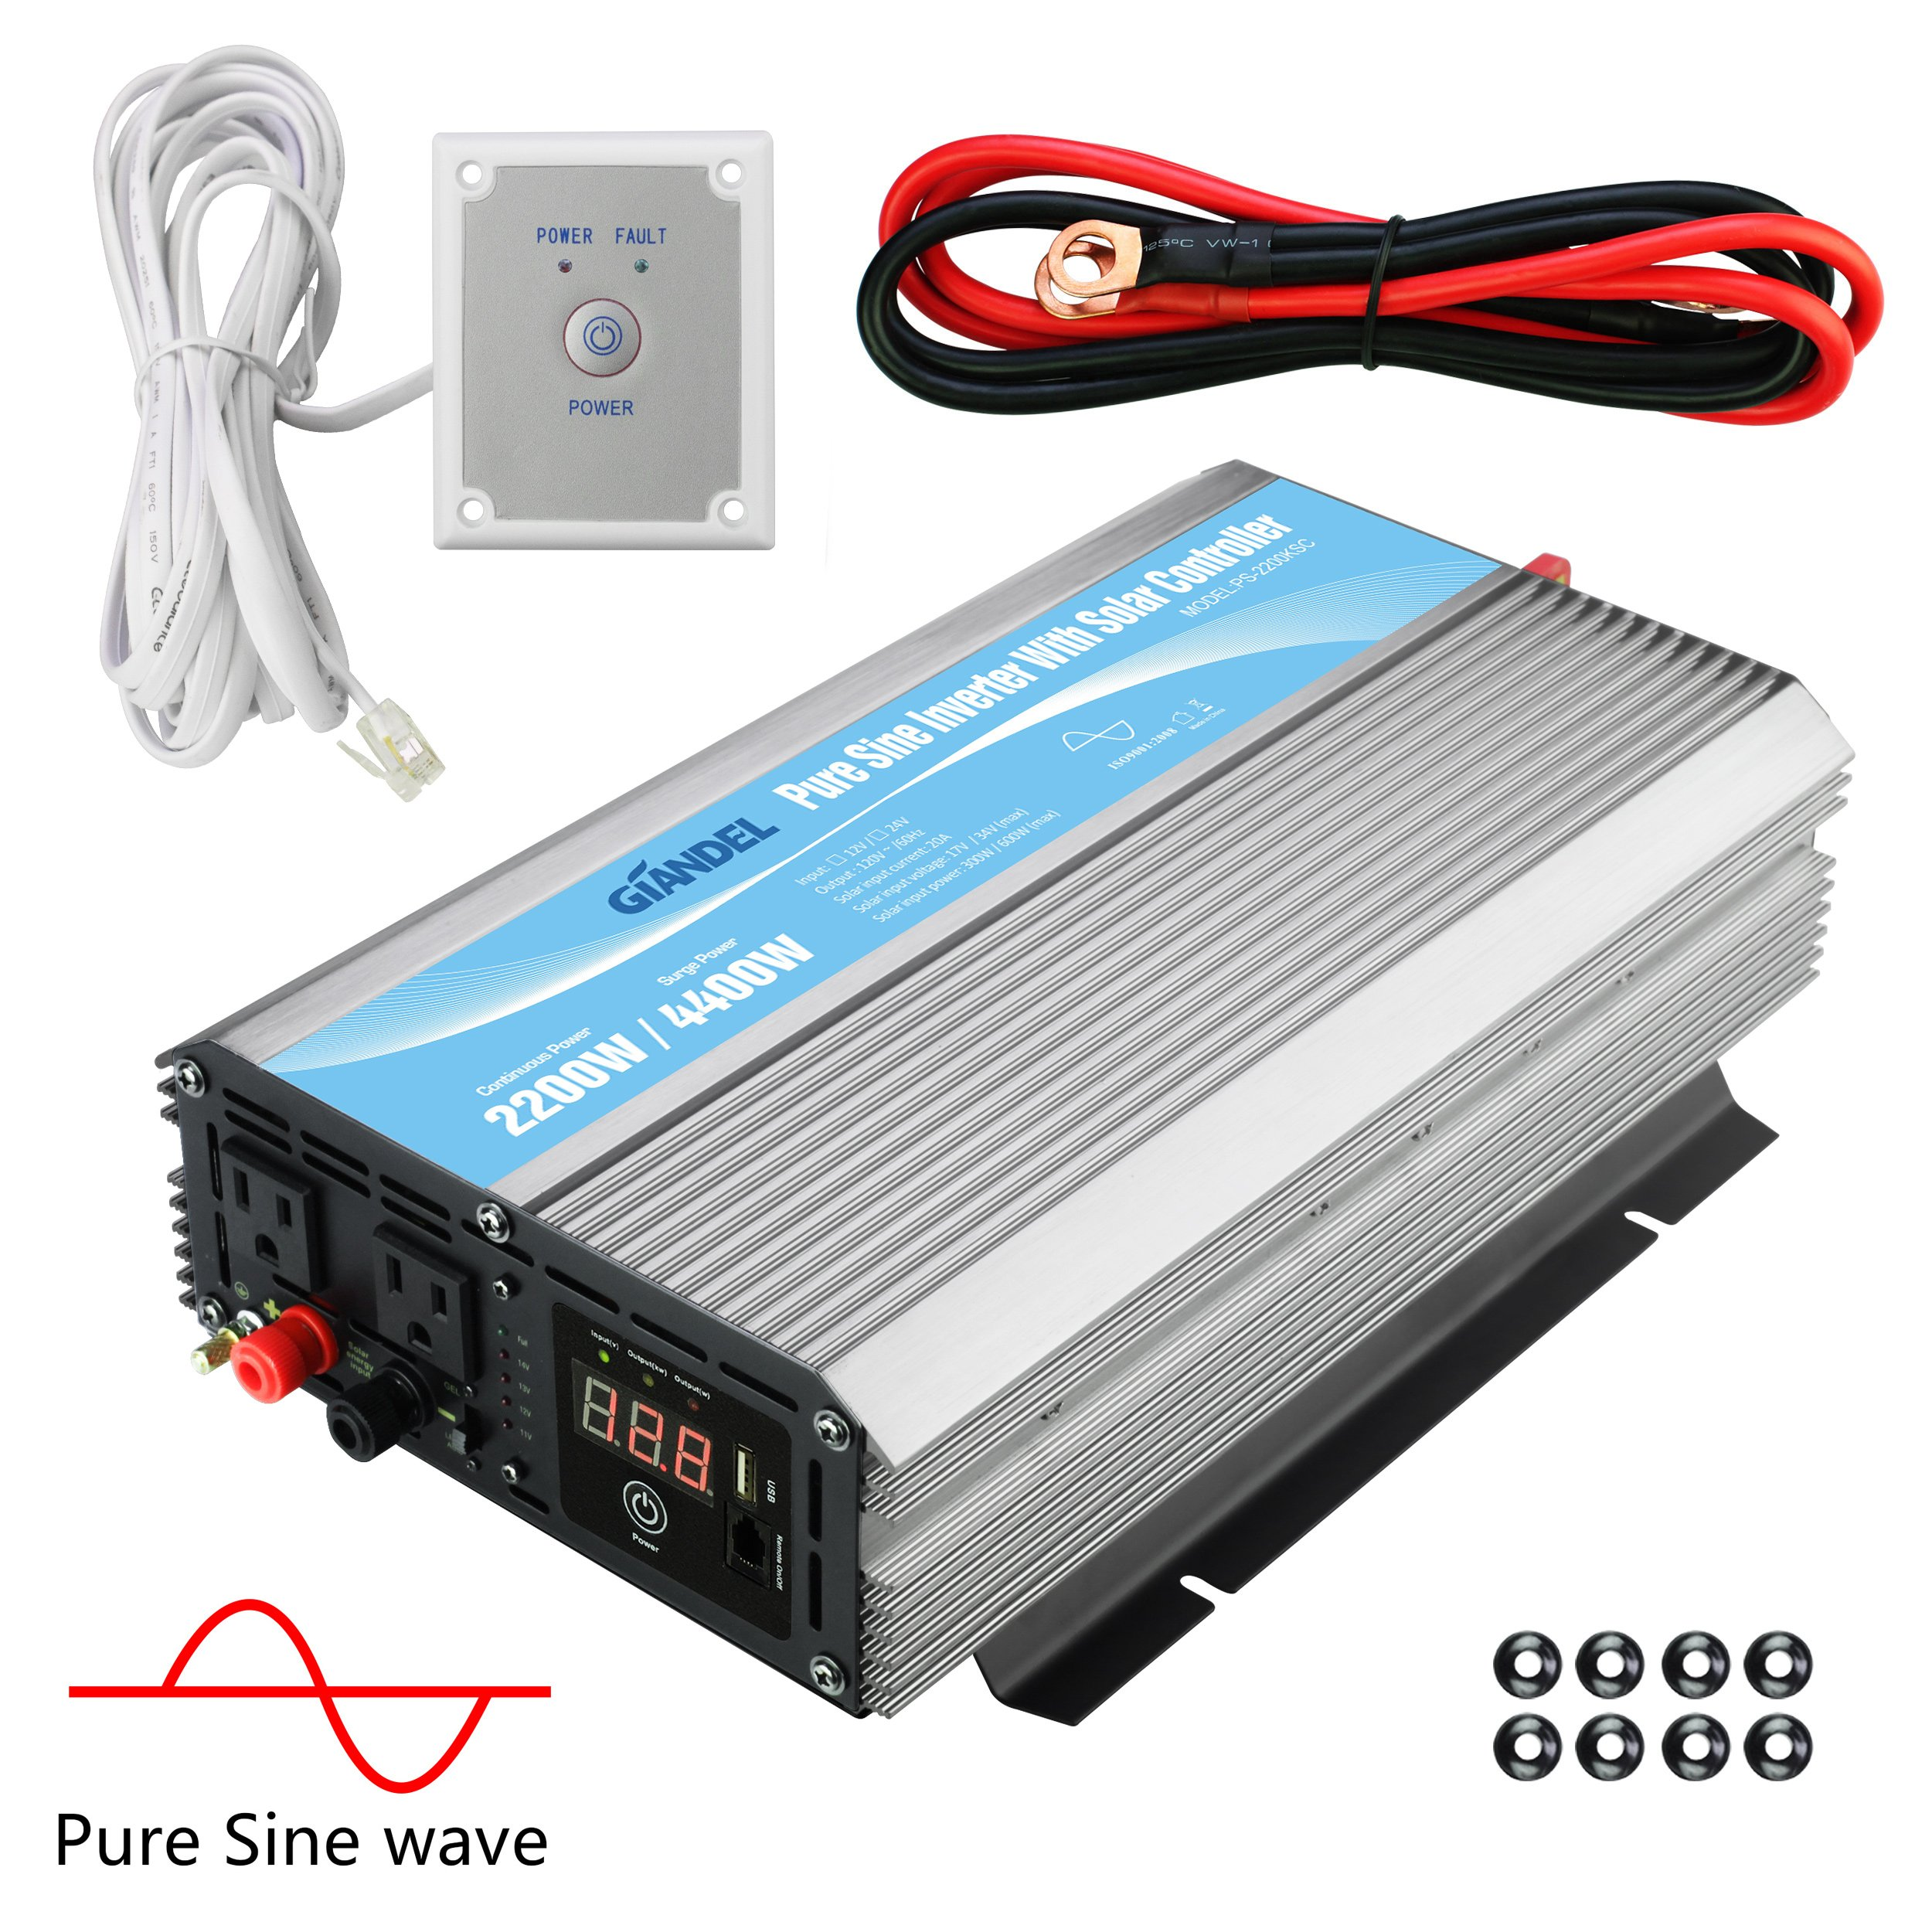 Giandel 2200W Pure Sine Wave Power Inverter 12V DC to 120V AC with 20A Solar Charge Control and Remote Control&LED Display and Dual AC Outlets &1x2.4A USB Port for RV Truck Car Solar System by Giandel (Image #1)